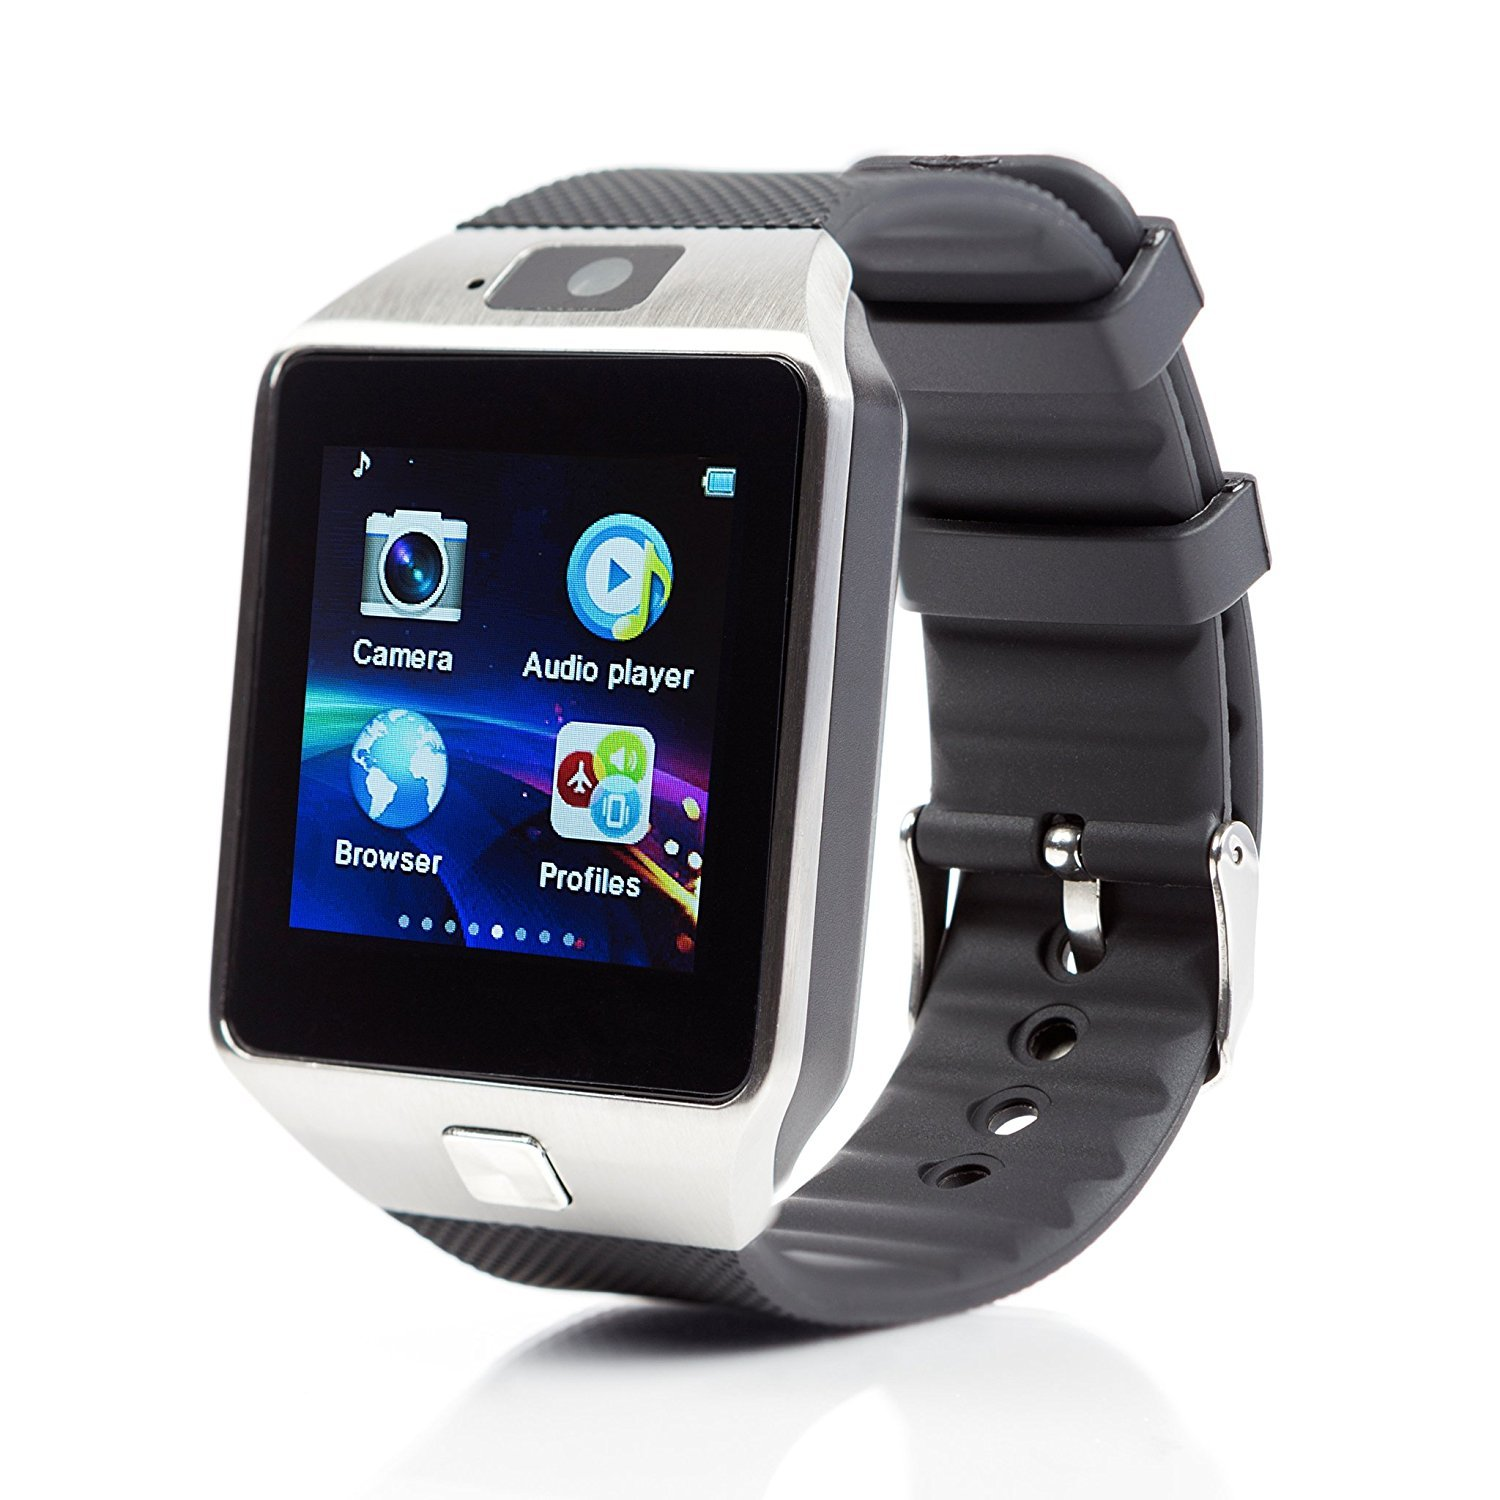 Captcha Smart Watch with SIM low price image 2